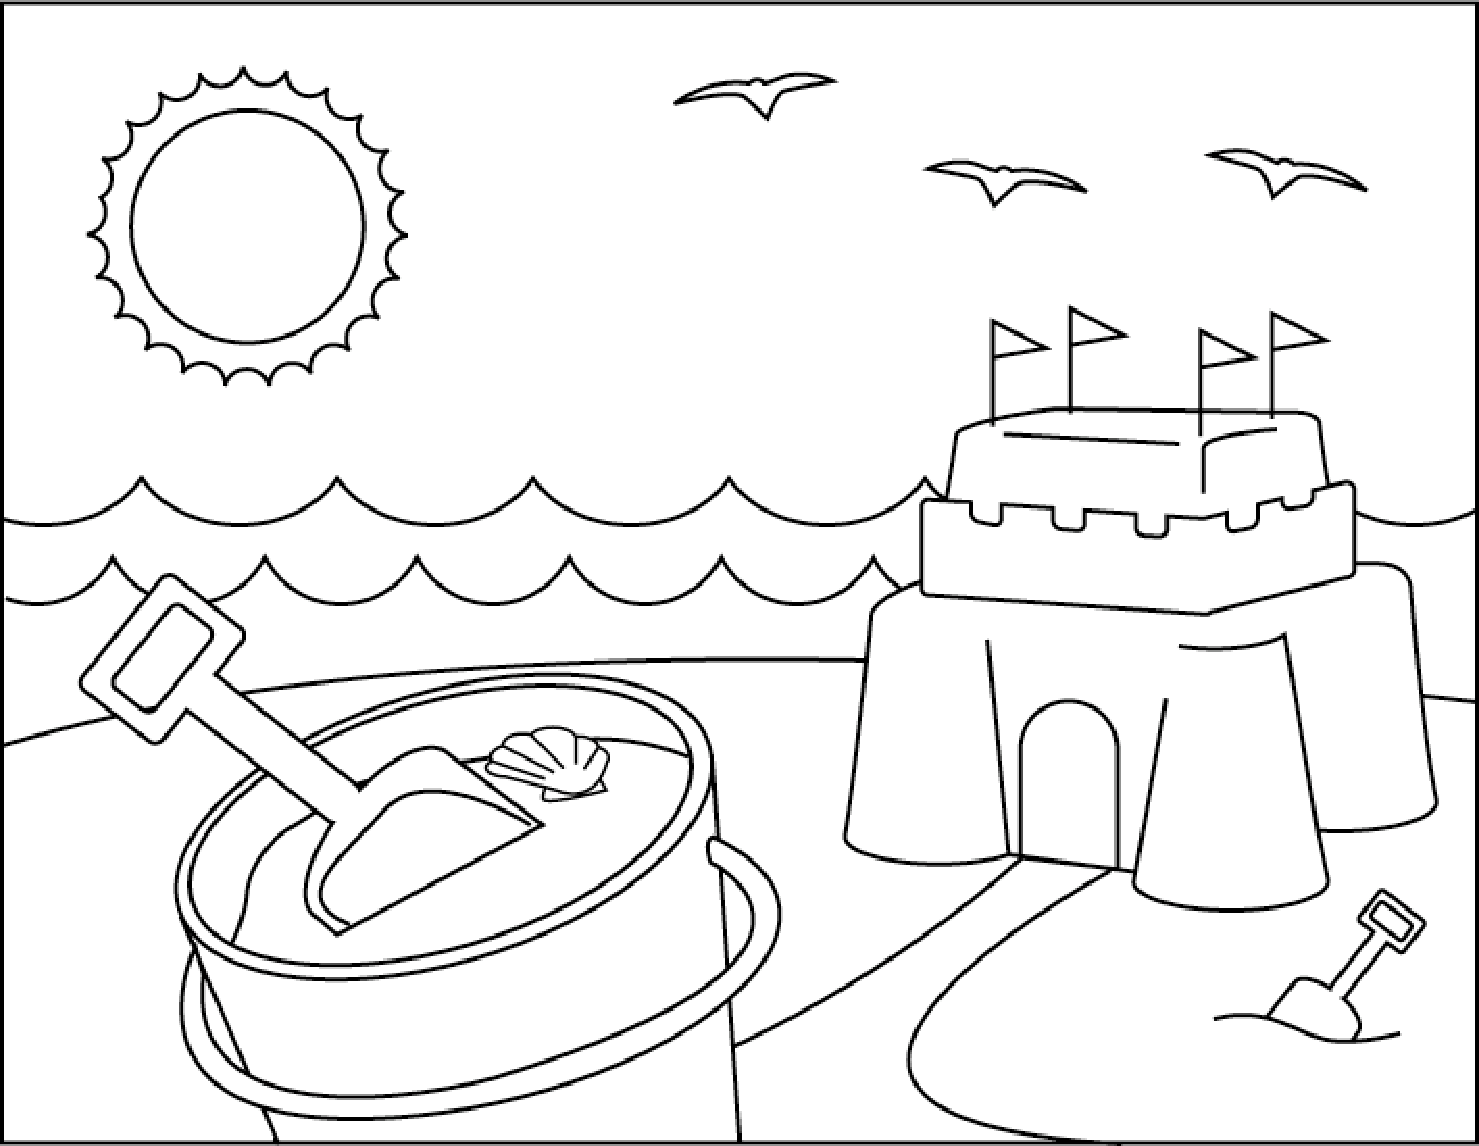 Sand Castle On Beach Summer coloring picture for kids | Coloring ...